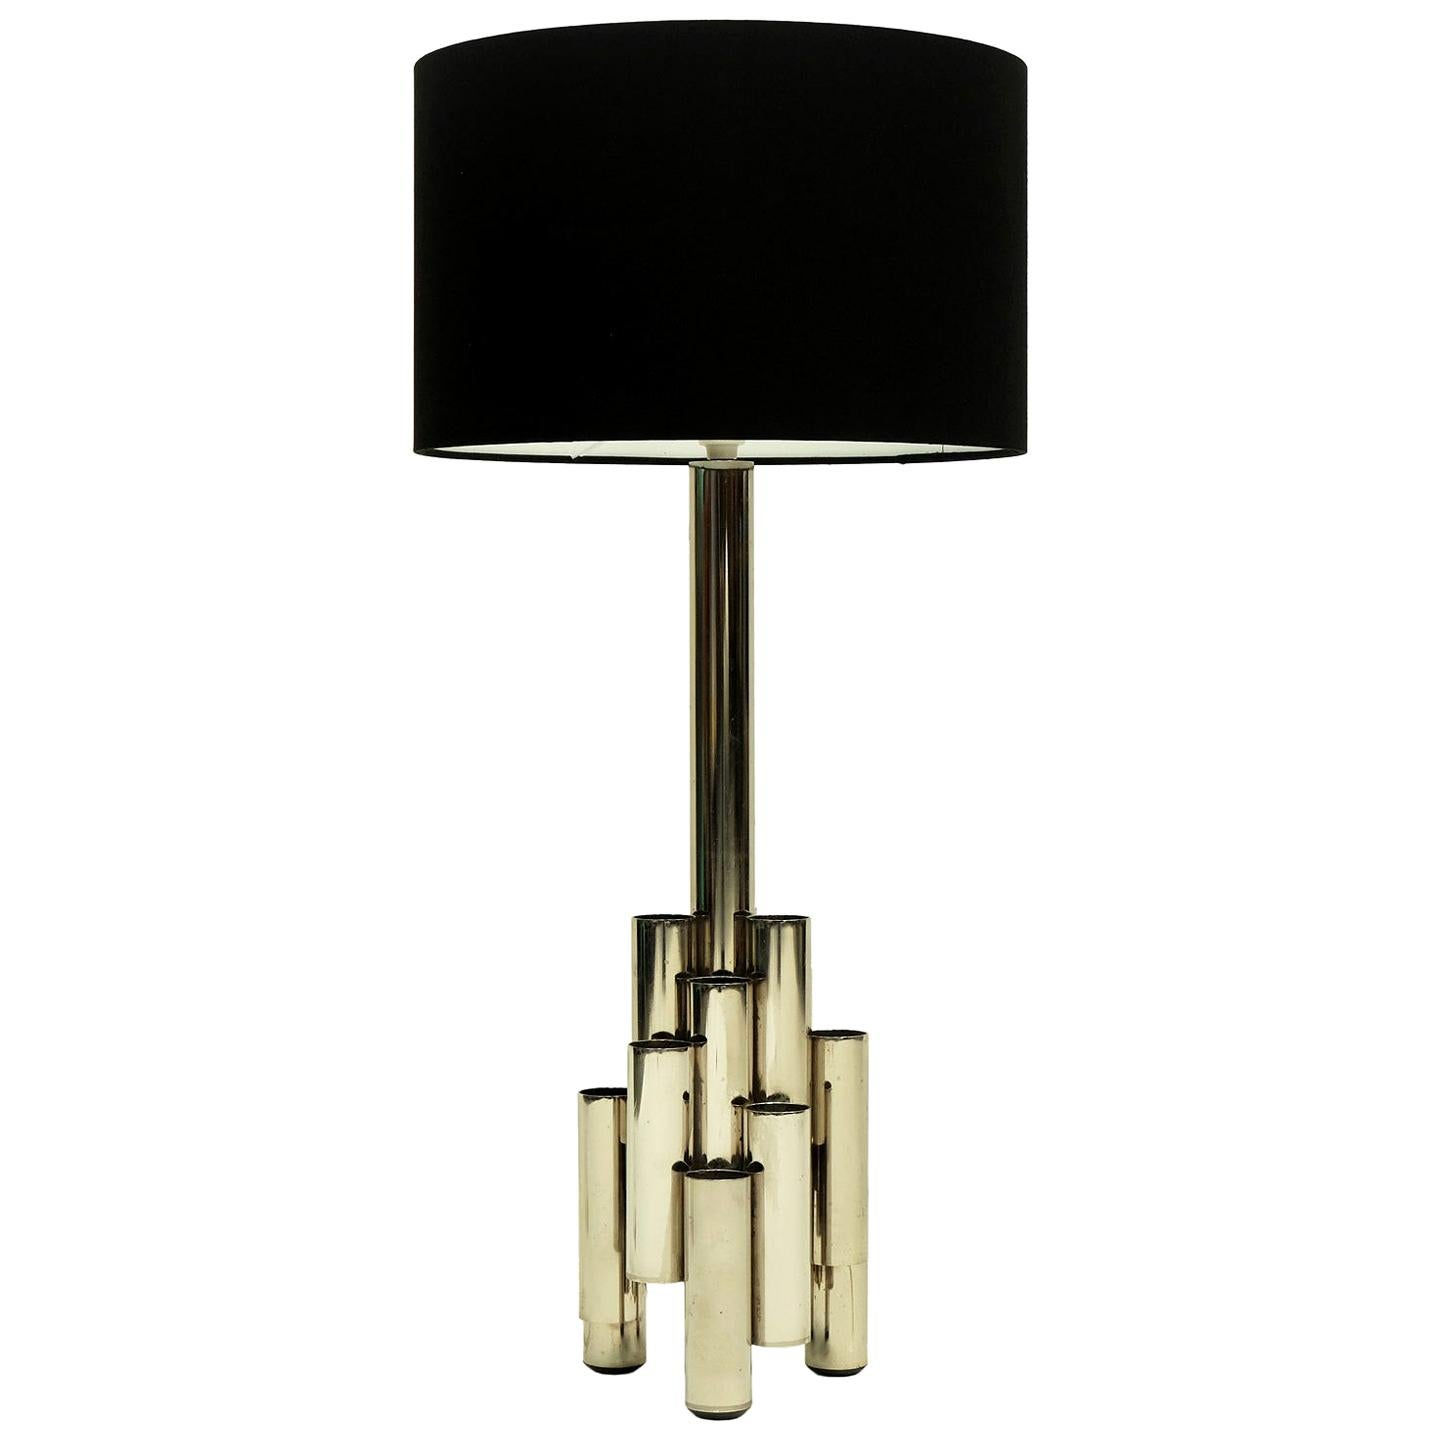 1960s Modernist Tubular Steel Italian Table Lamp in the Style of Gio Ponti